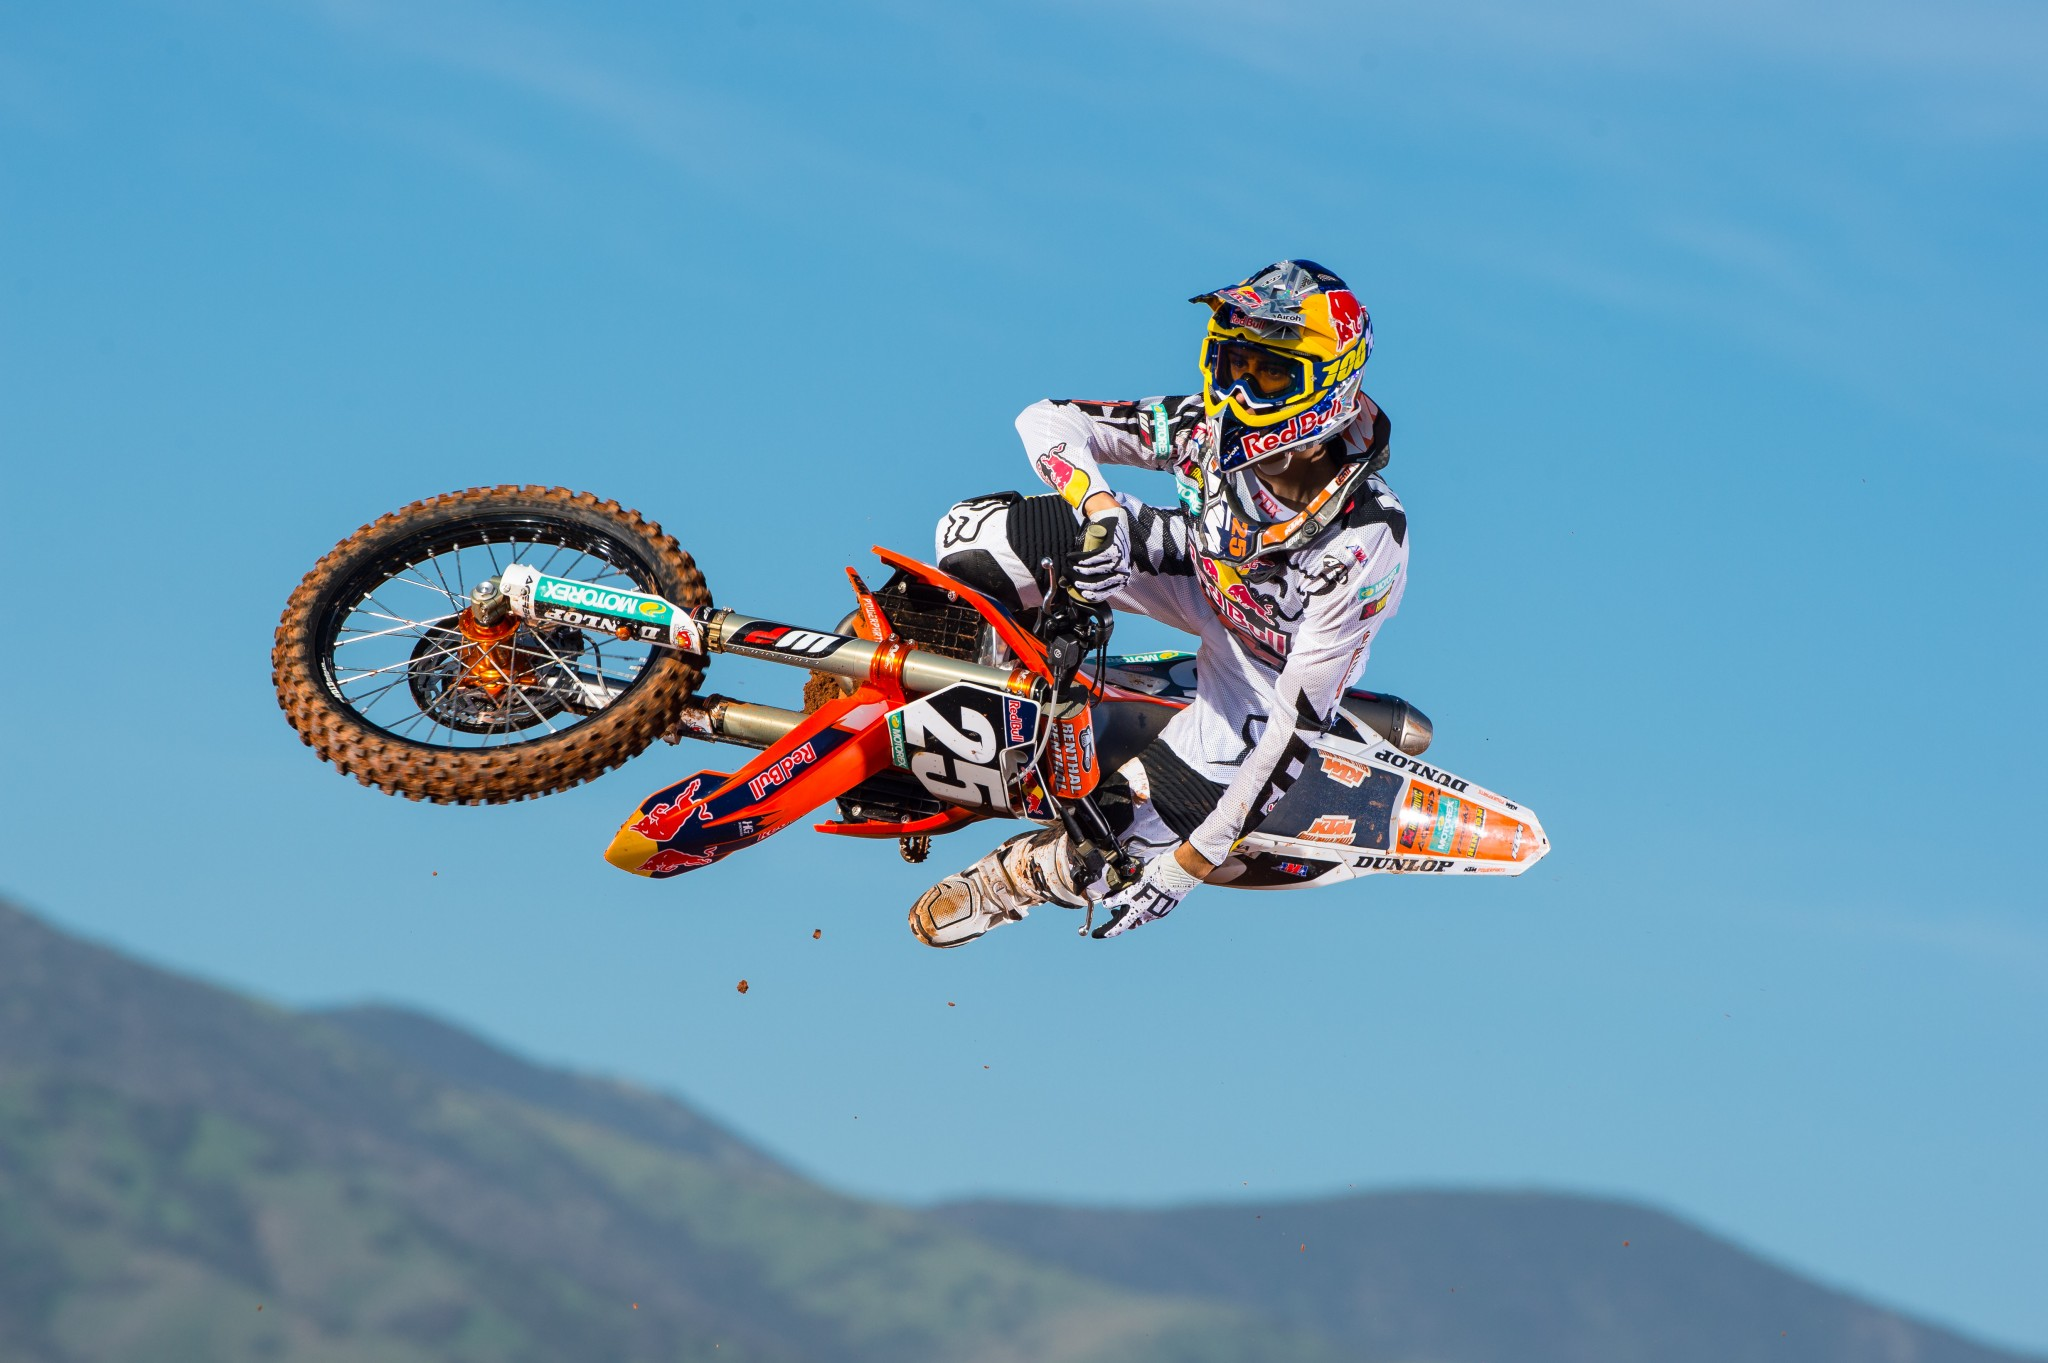 Ktm Motocross Wallpaper Hd 100 Presents Behind The Scenes With Marvin Musquin